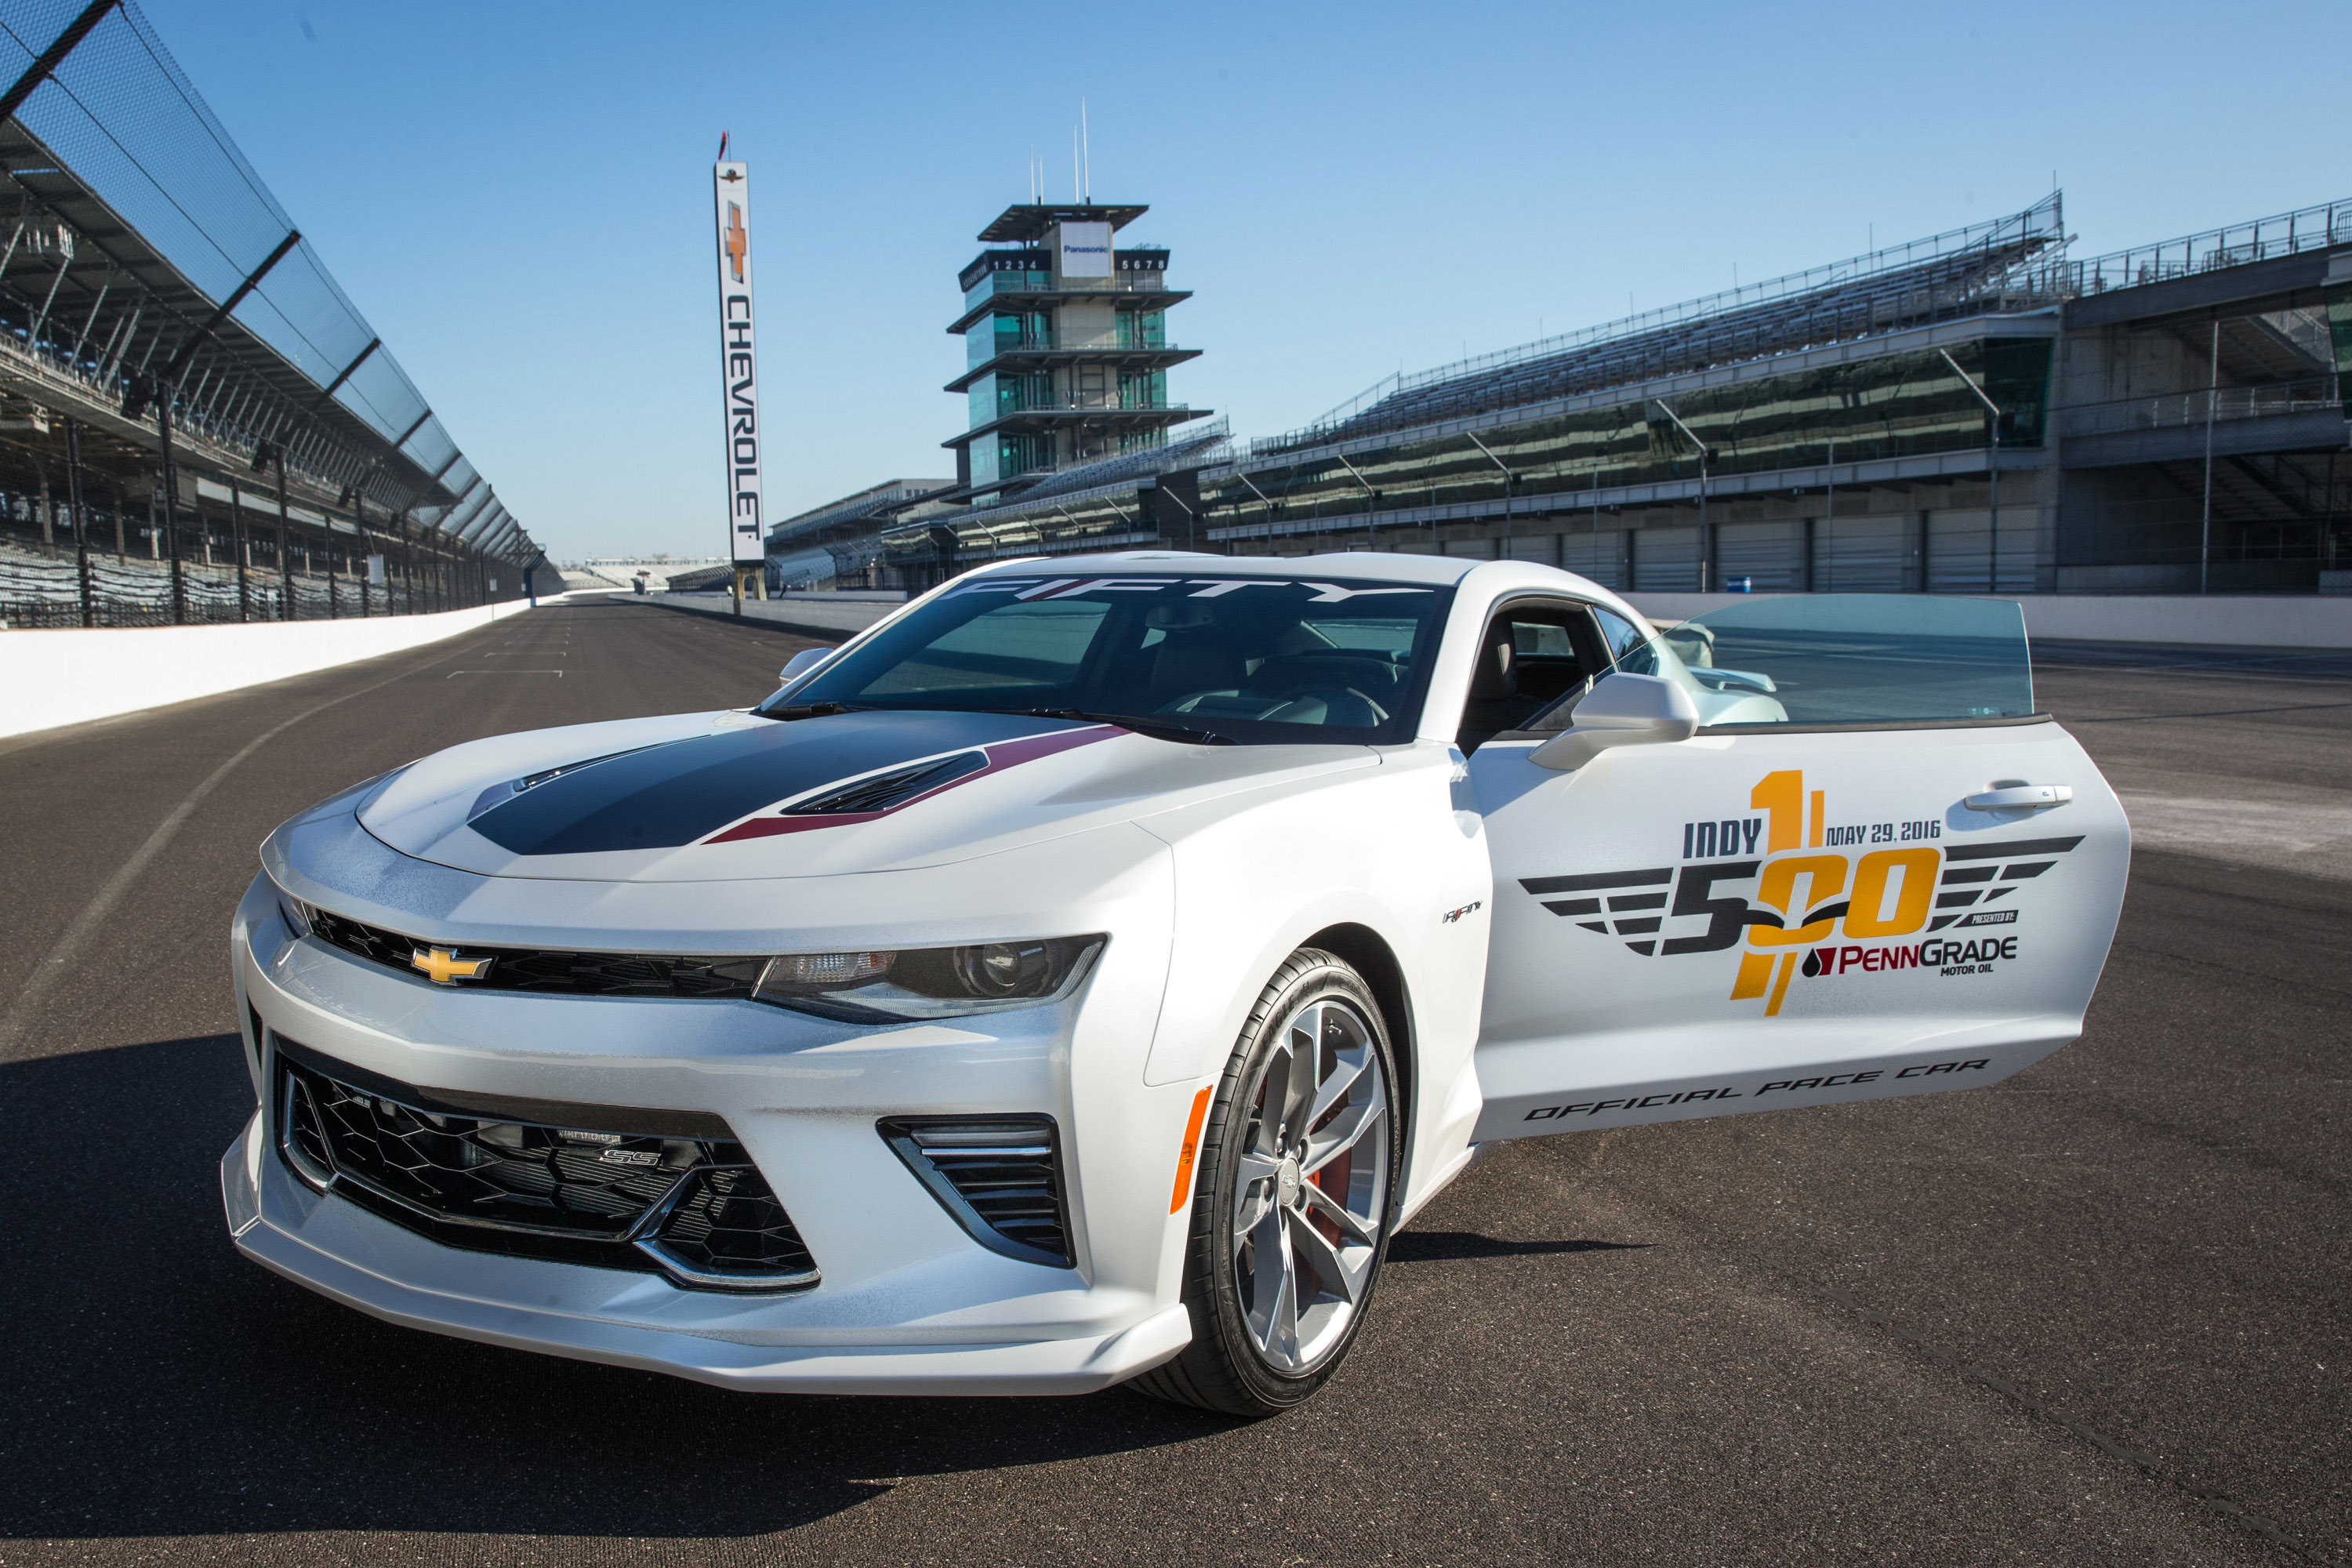 Roger Penske Will Drive The Pace Car At The Indianapolis 500